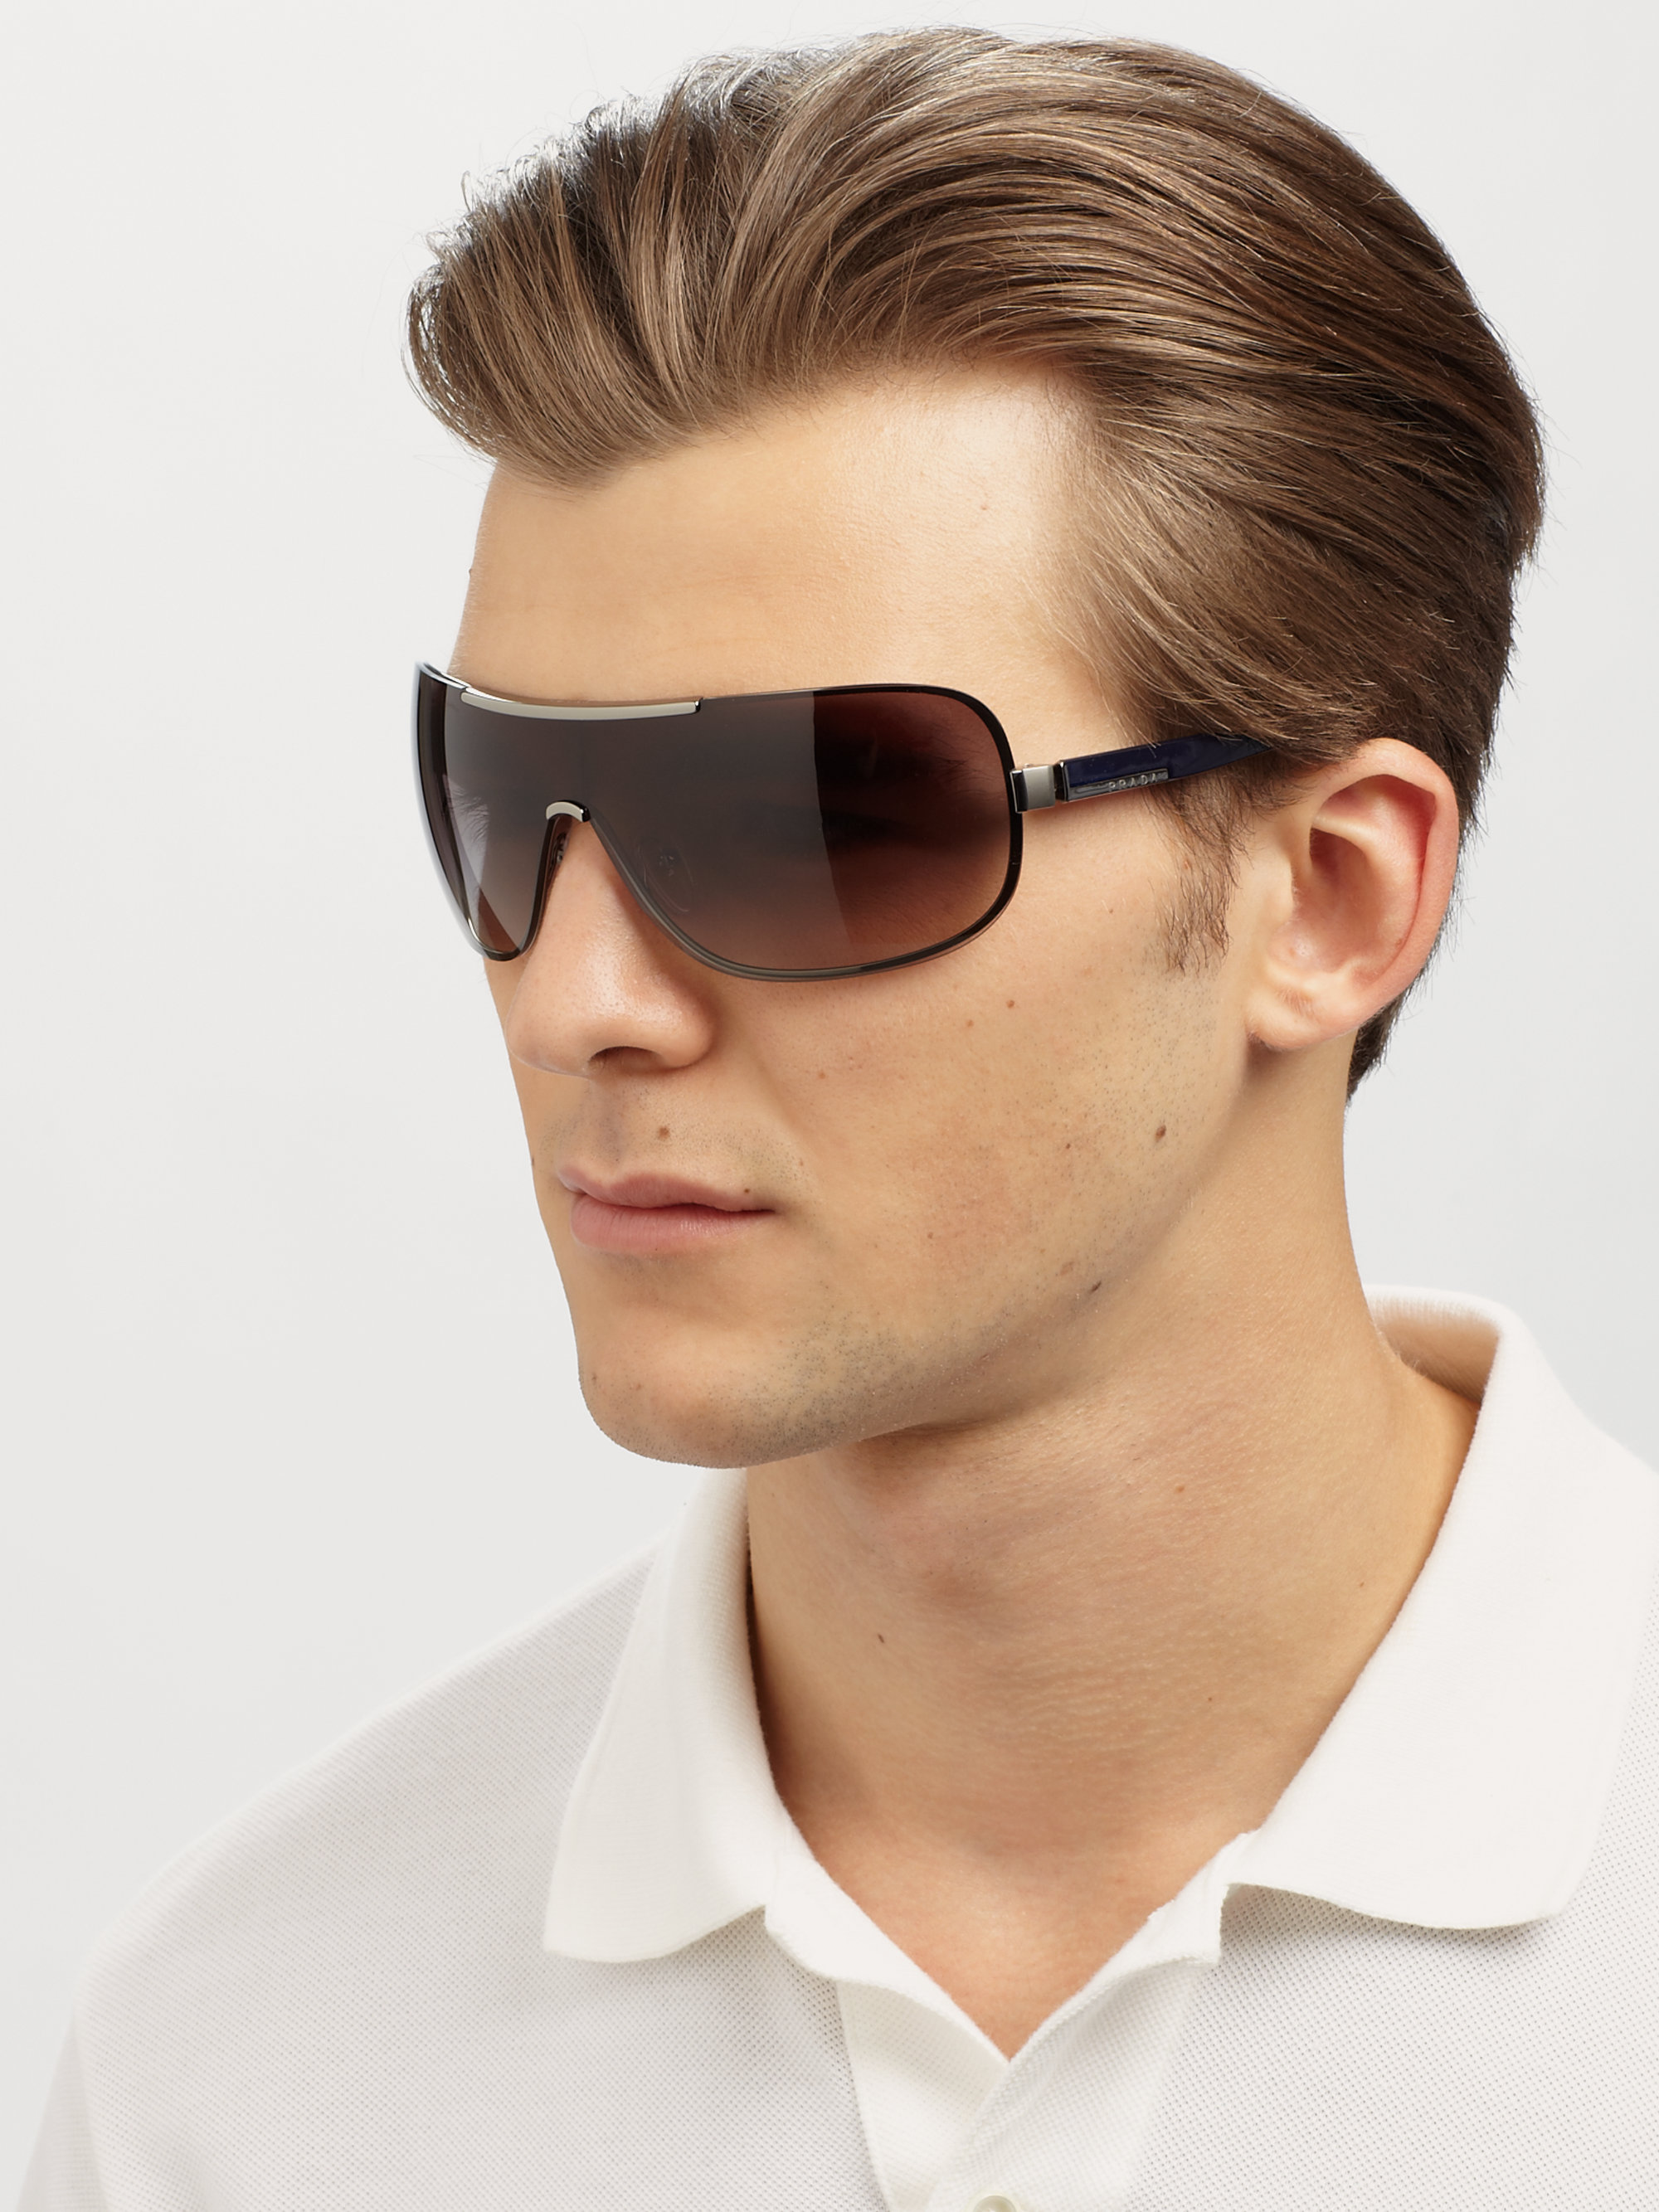 Oversized Wayfarer Sunglasses Men  prada oversized metal shield sunglasses in gray for men lyst